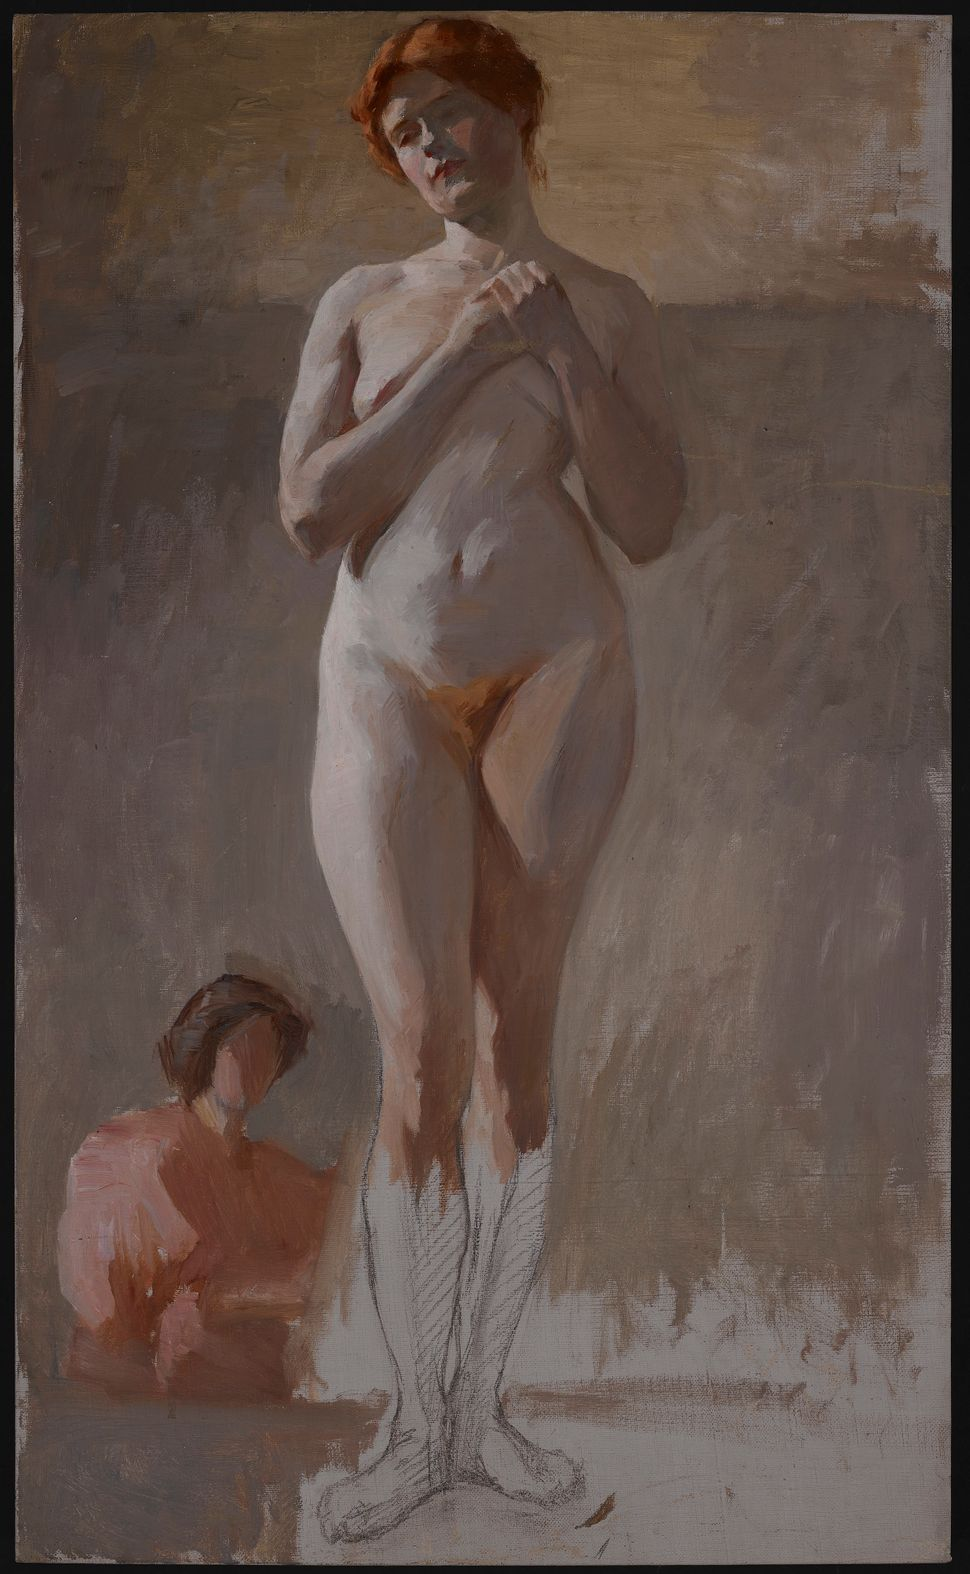 Florine Stettheimer, Nude Study, Standing with Hands Clasped, late 1890s, Oil on canvas mounted on board, 30 x 18 in. Columbi